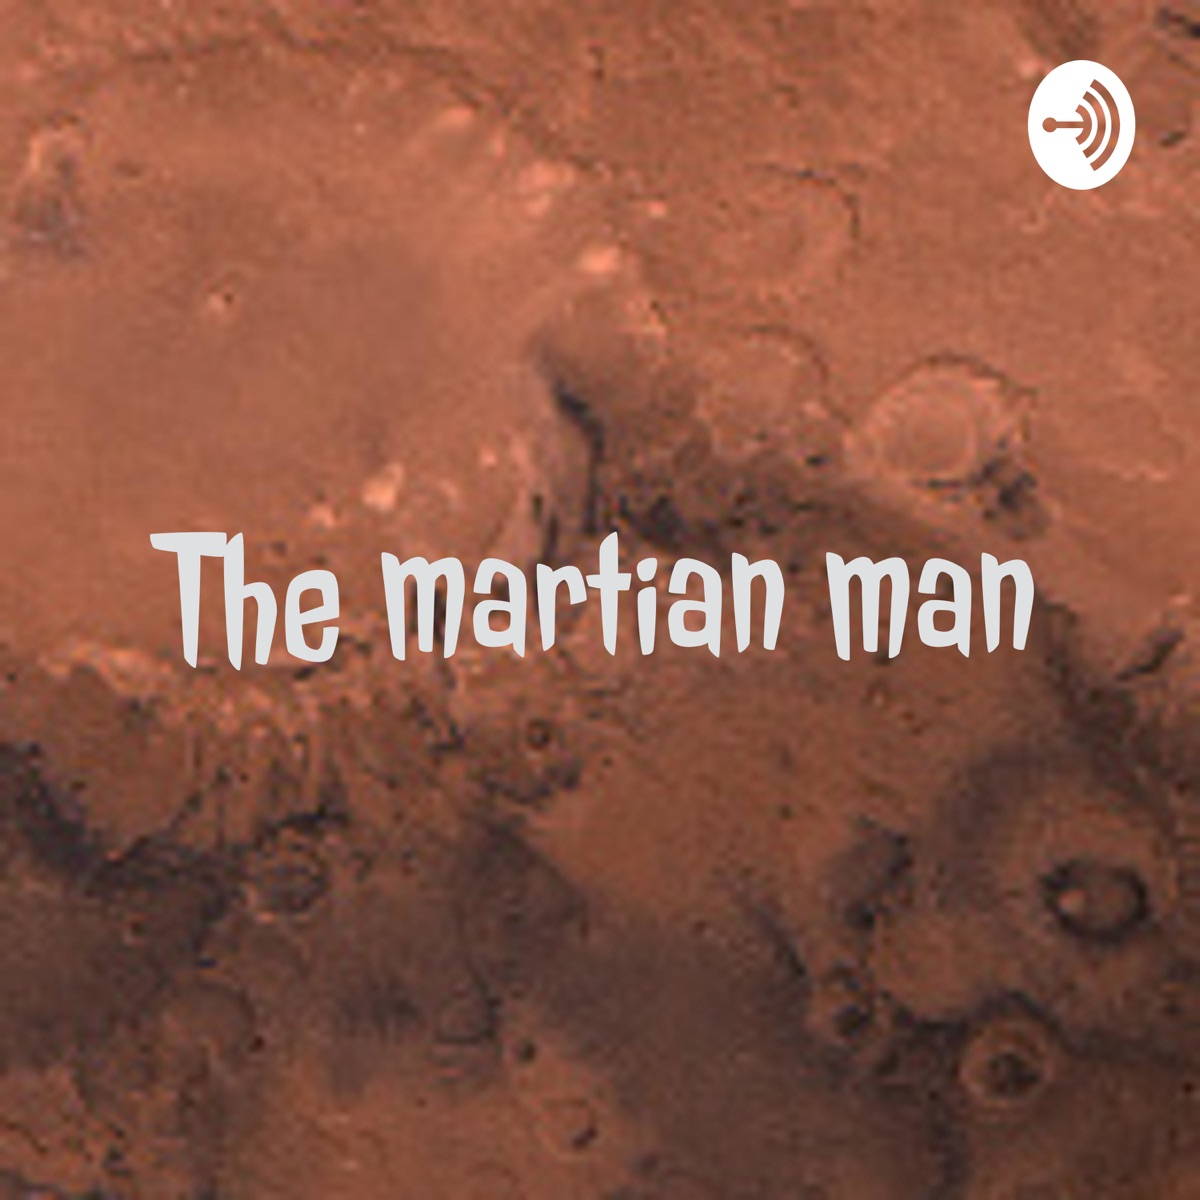 The martian man